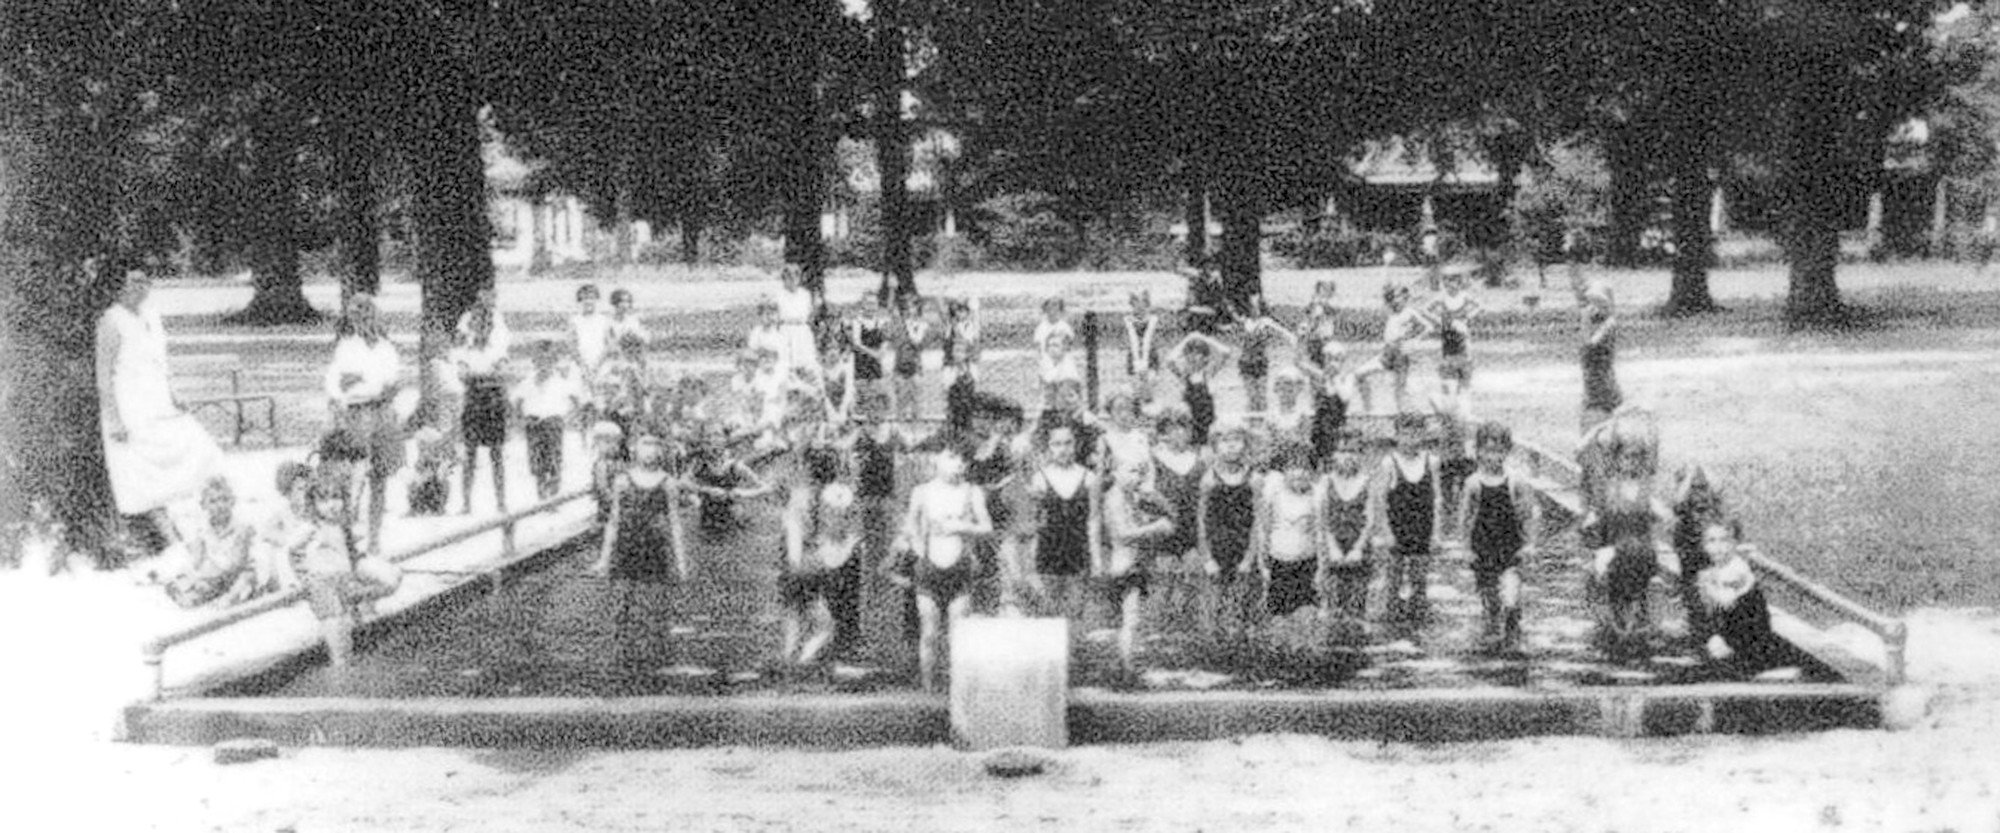 Wading pool at Memorial Park